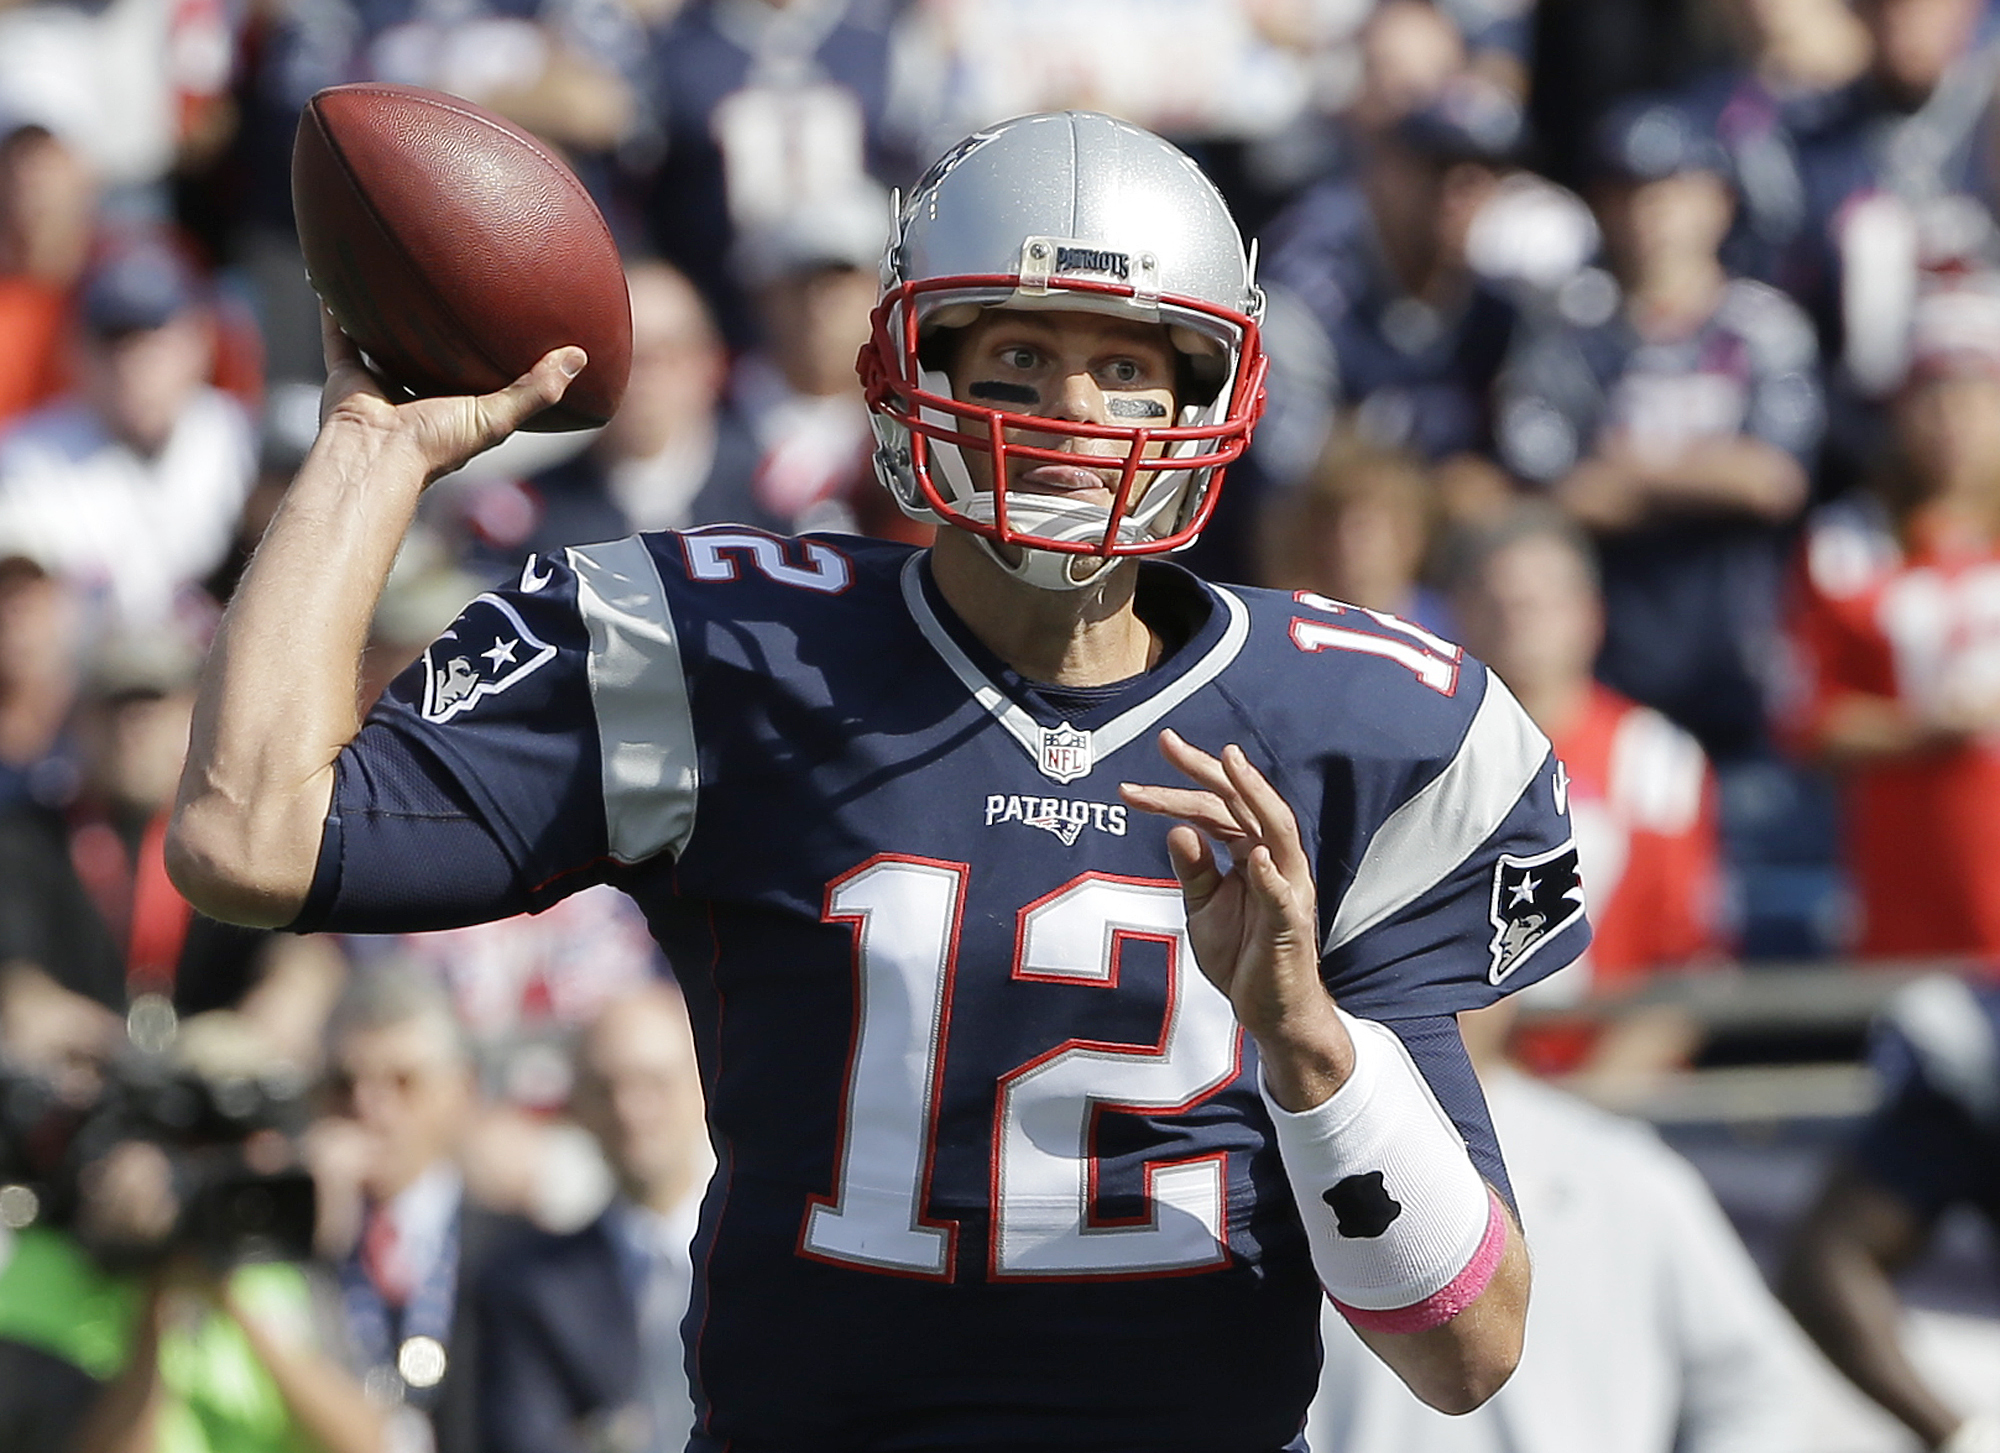 New England Patriots quarterback Tom Brady passes against the Cincinnati Bengals during the first half of an NFL football game, Sunday, Oct. 16, 2016, in Foxborough, Mass. (AP Photo/Steven Senne)